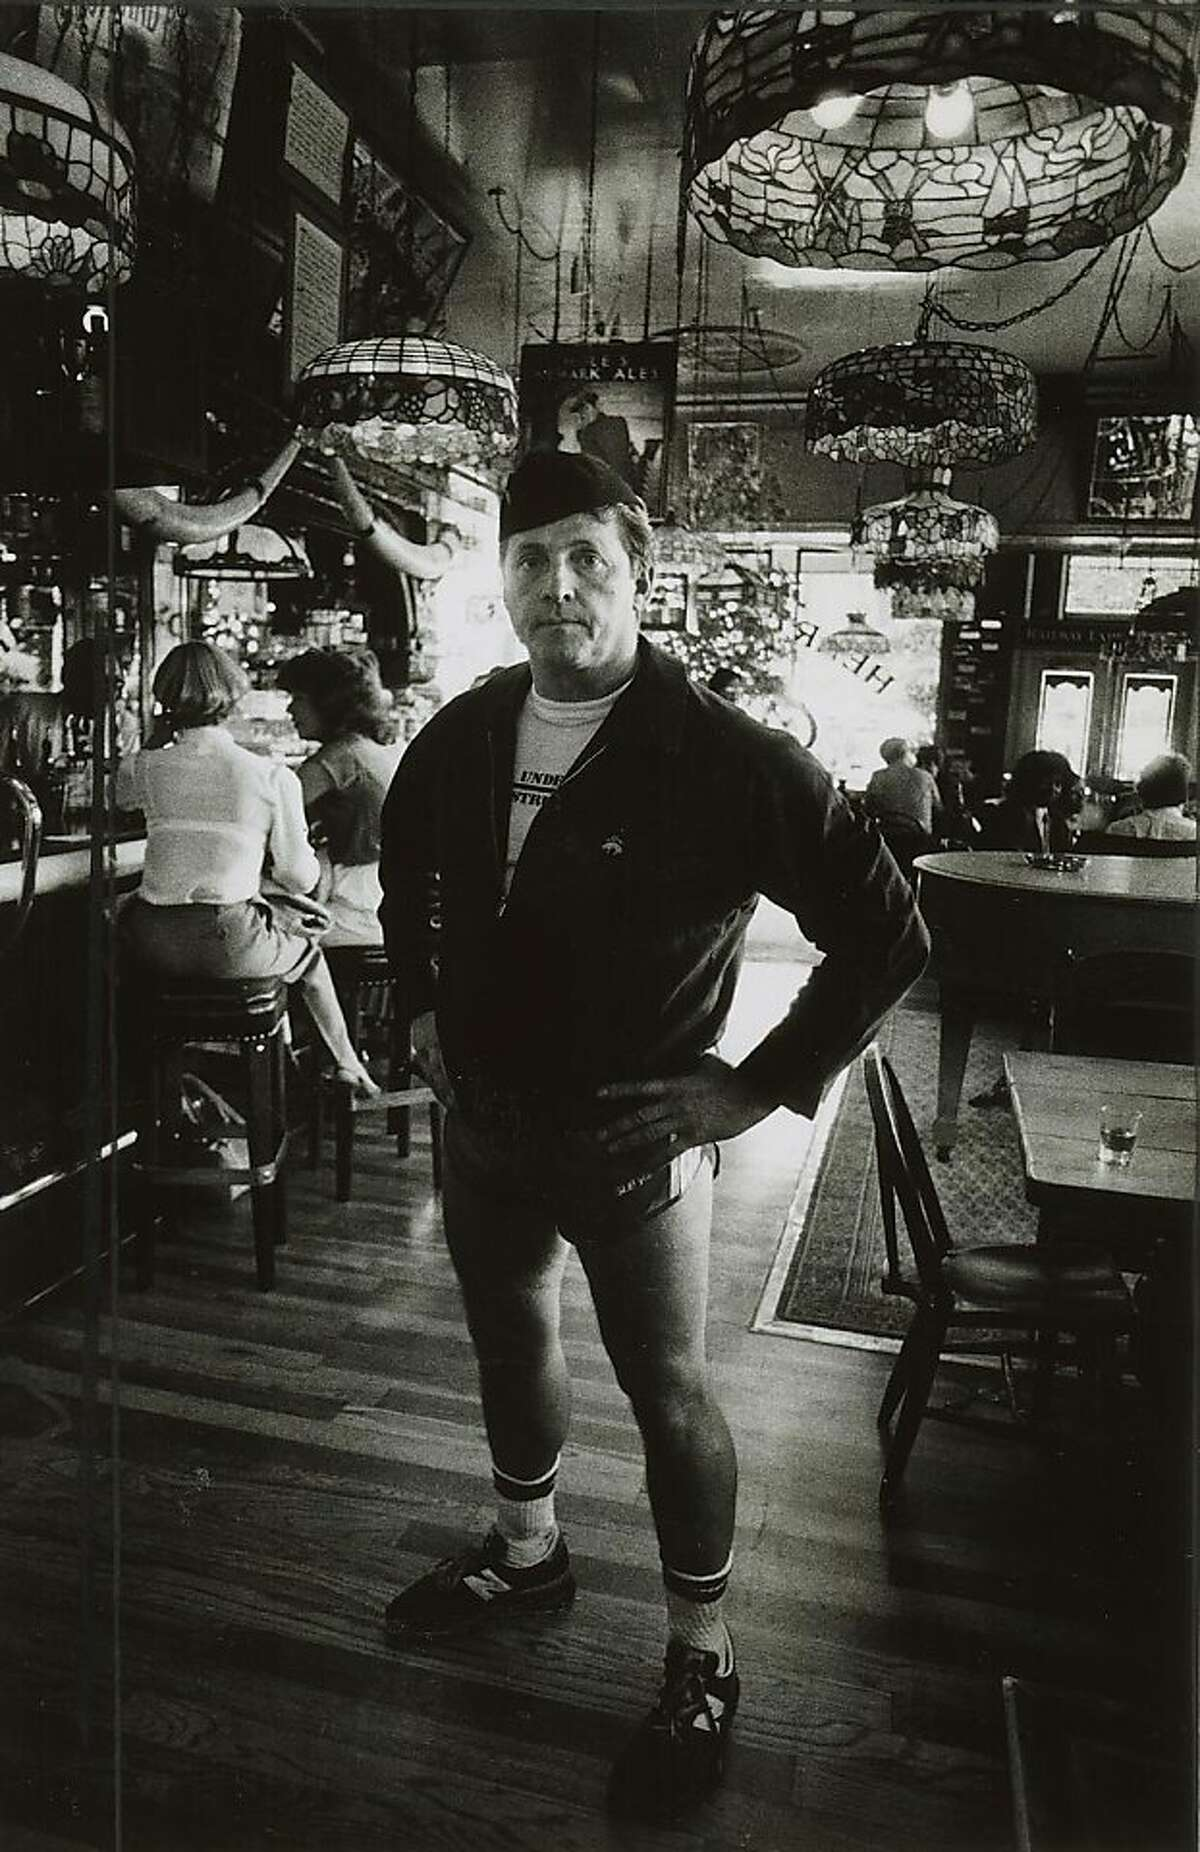 """1983 - Henry Africa in his saloon, """"henry Africa's,"""" in 1983, the year he quit the business. Ran on: 07-06-2008 Henry Africa, also known as Norman Hobday, brought fern bars to San Francisco. He decided to sell his place in 1983. Ran on: 03-02-2011 Henry Africa, born Norman Jay Hobday, at his namesake joint and original fern bar, so named because of the lush plants he used to decorate the place. Ran on: 03-02-2011 Henry Africa, born Norman Jay Hobday, at his namesake joint and original fern bar, so named because of the lush plants he used to decorate the place."""